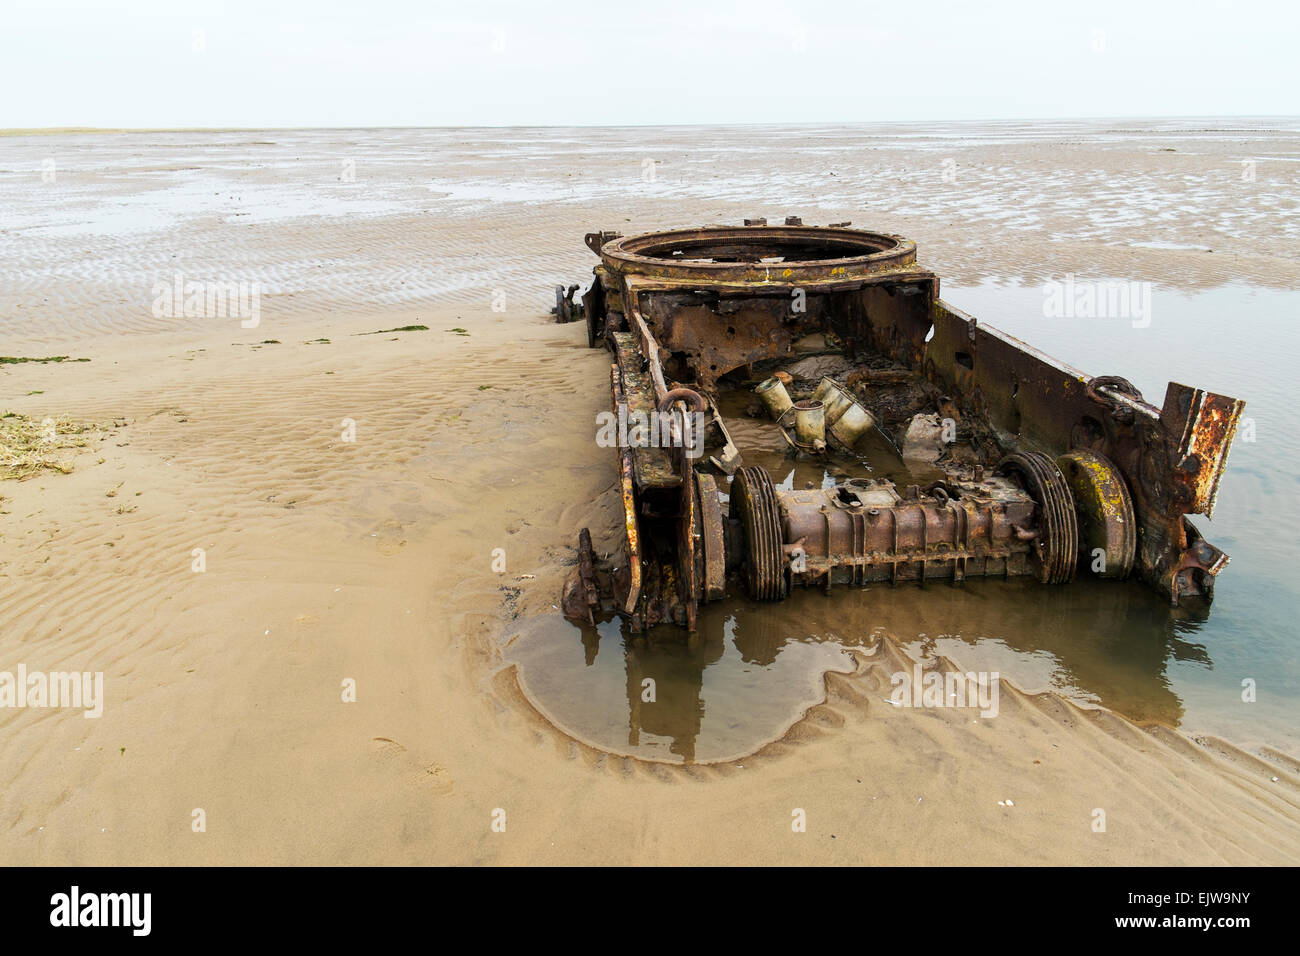 WW2 tank rusting in sand dunes on Lincolnshire coast remains to be used for target practice RAF bombing shooting - Stock Image